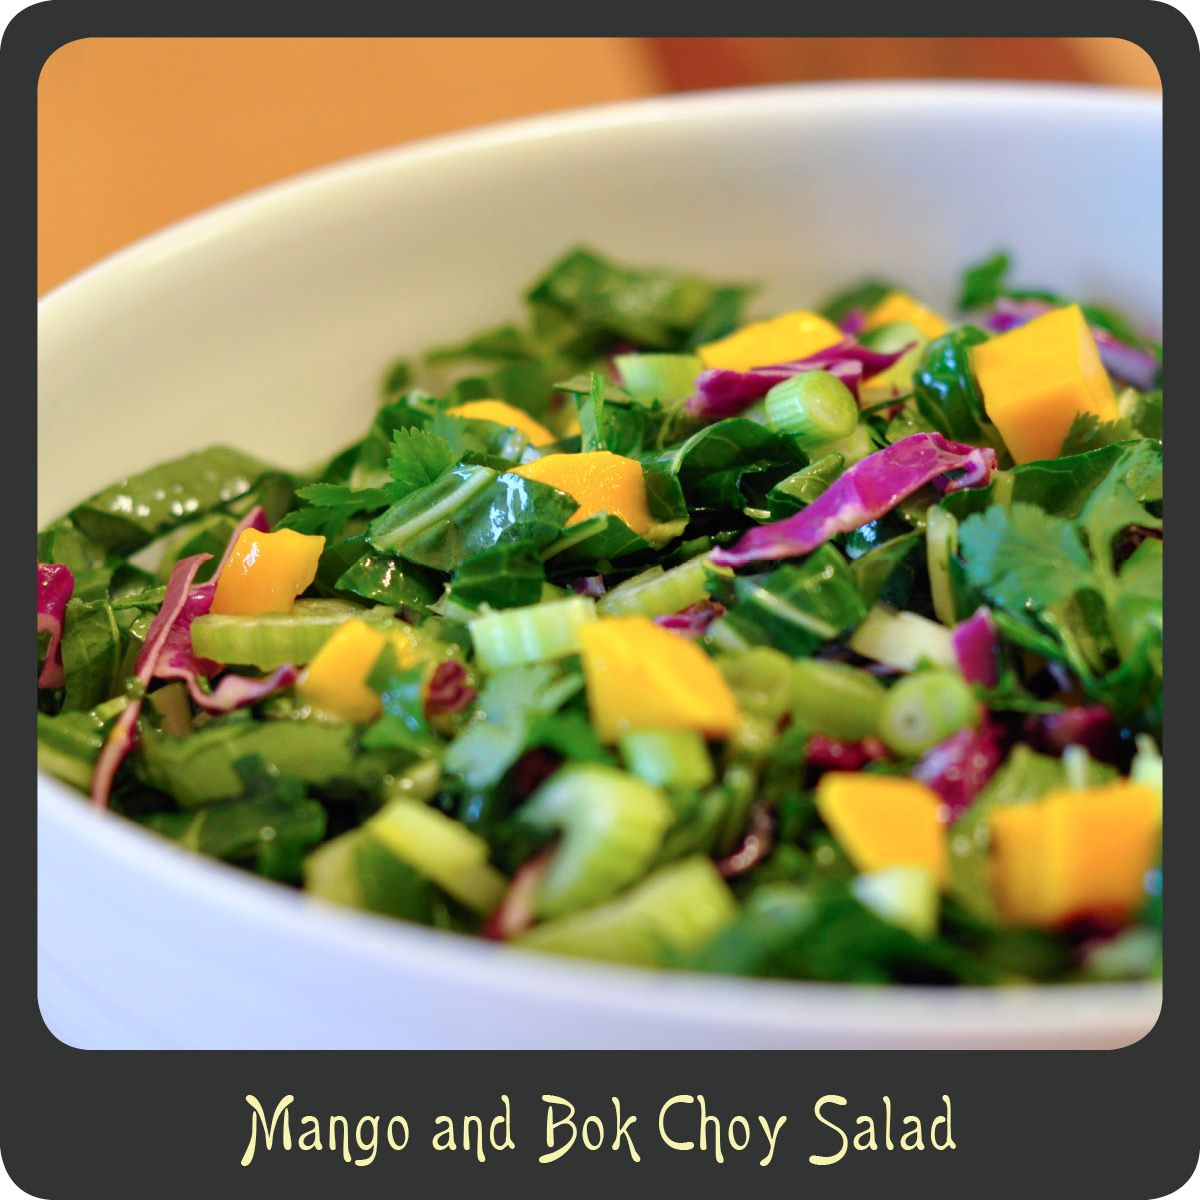 Mango and Bok Choy Salad—Gorgeous colorful salad and super refreshing. Low cal and low carb. Perfect for spring and summer months!